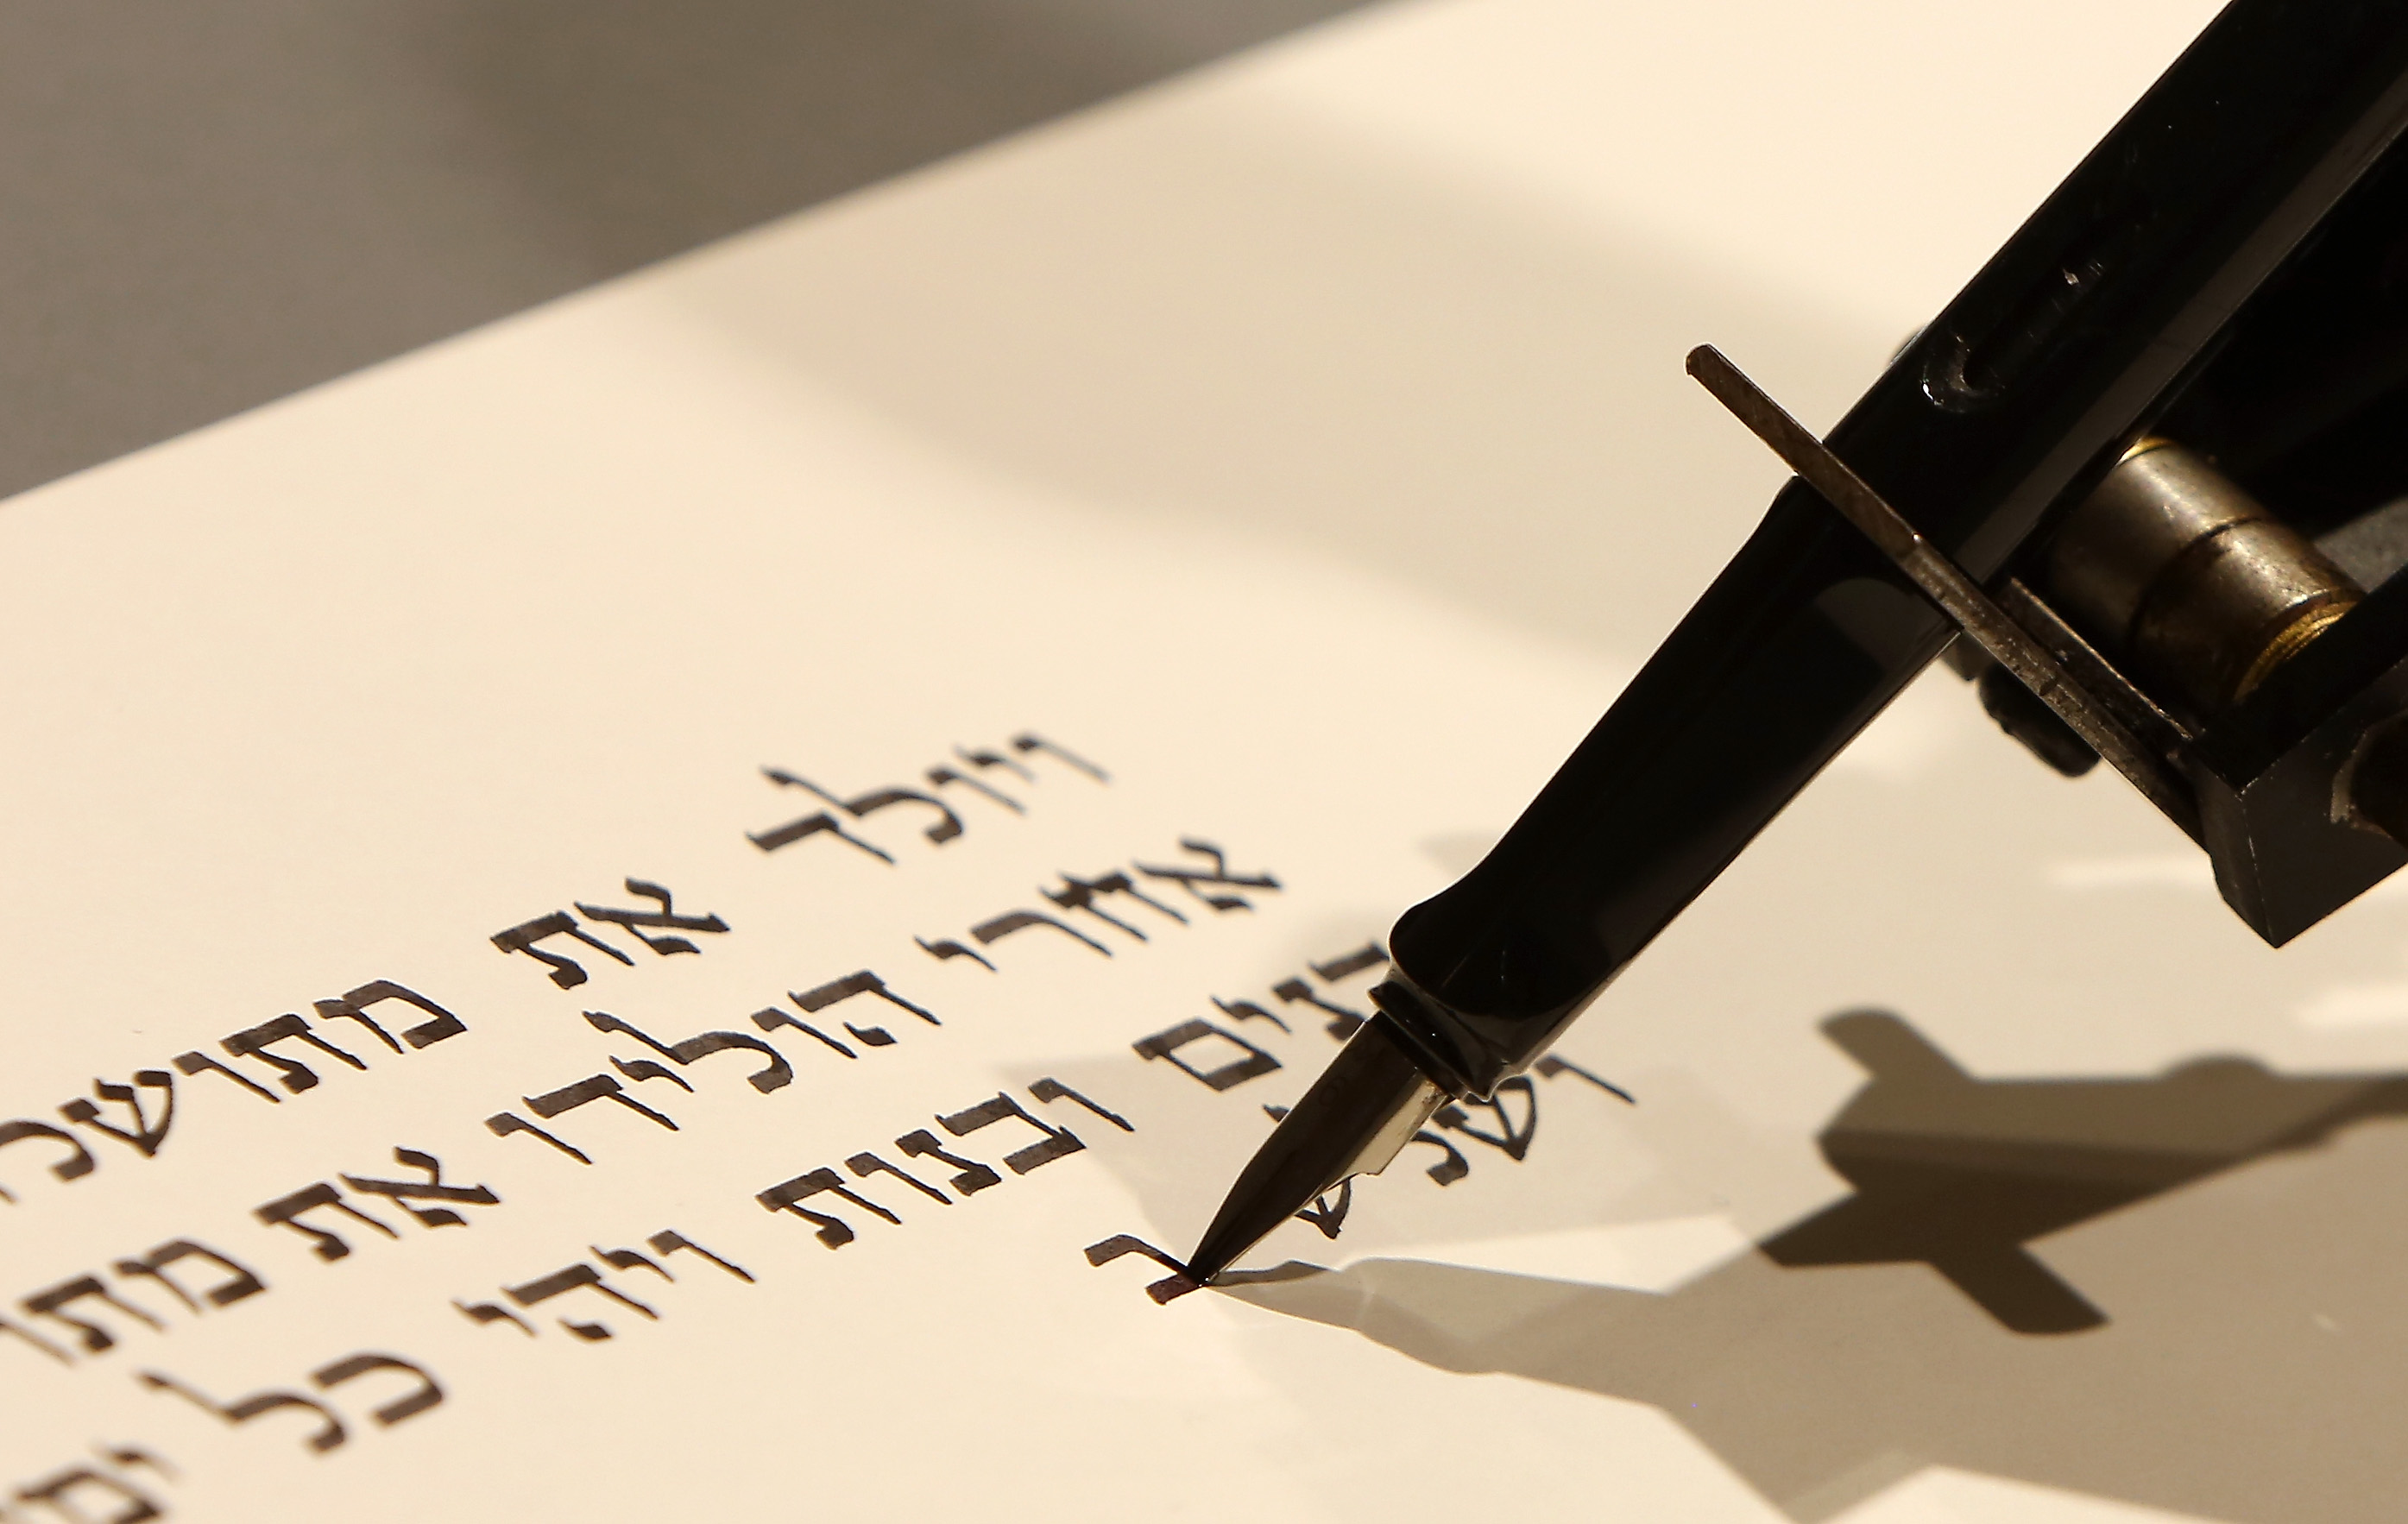 An industrial robot, an installation work called 'bios [torah]' by the artist group robotlab, begins writing a Torah on July 10, 2014 in the Jewish Museum in Berlin, Germany.